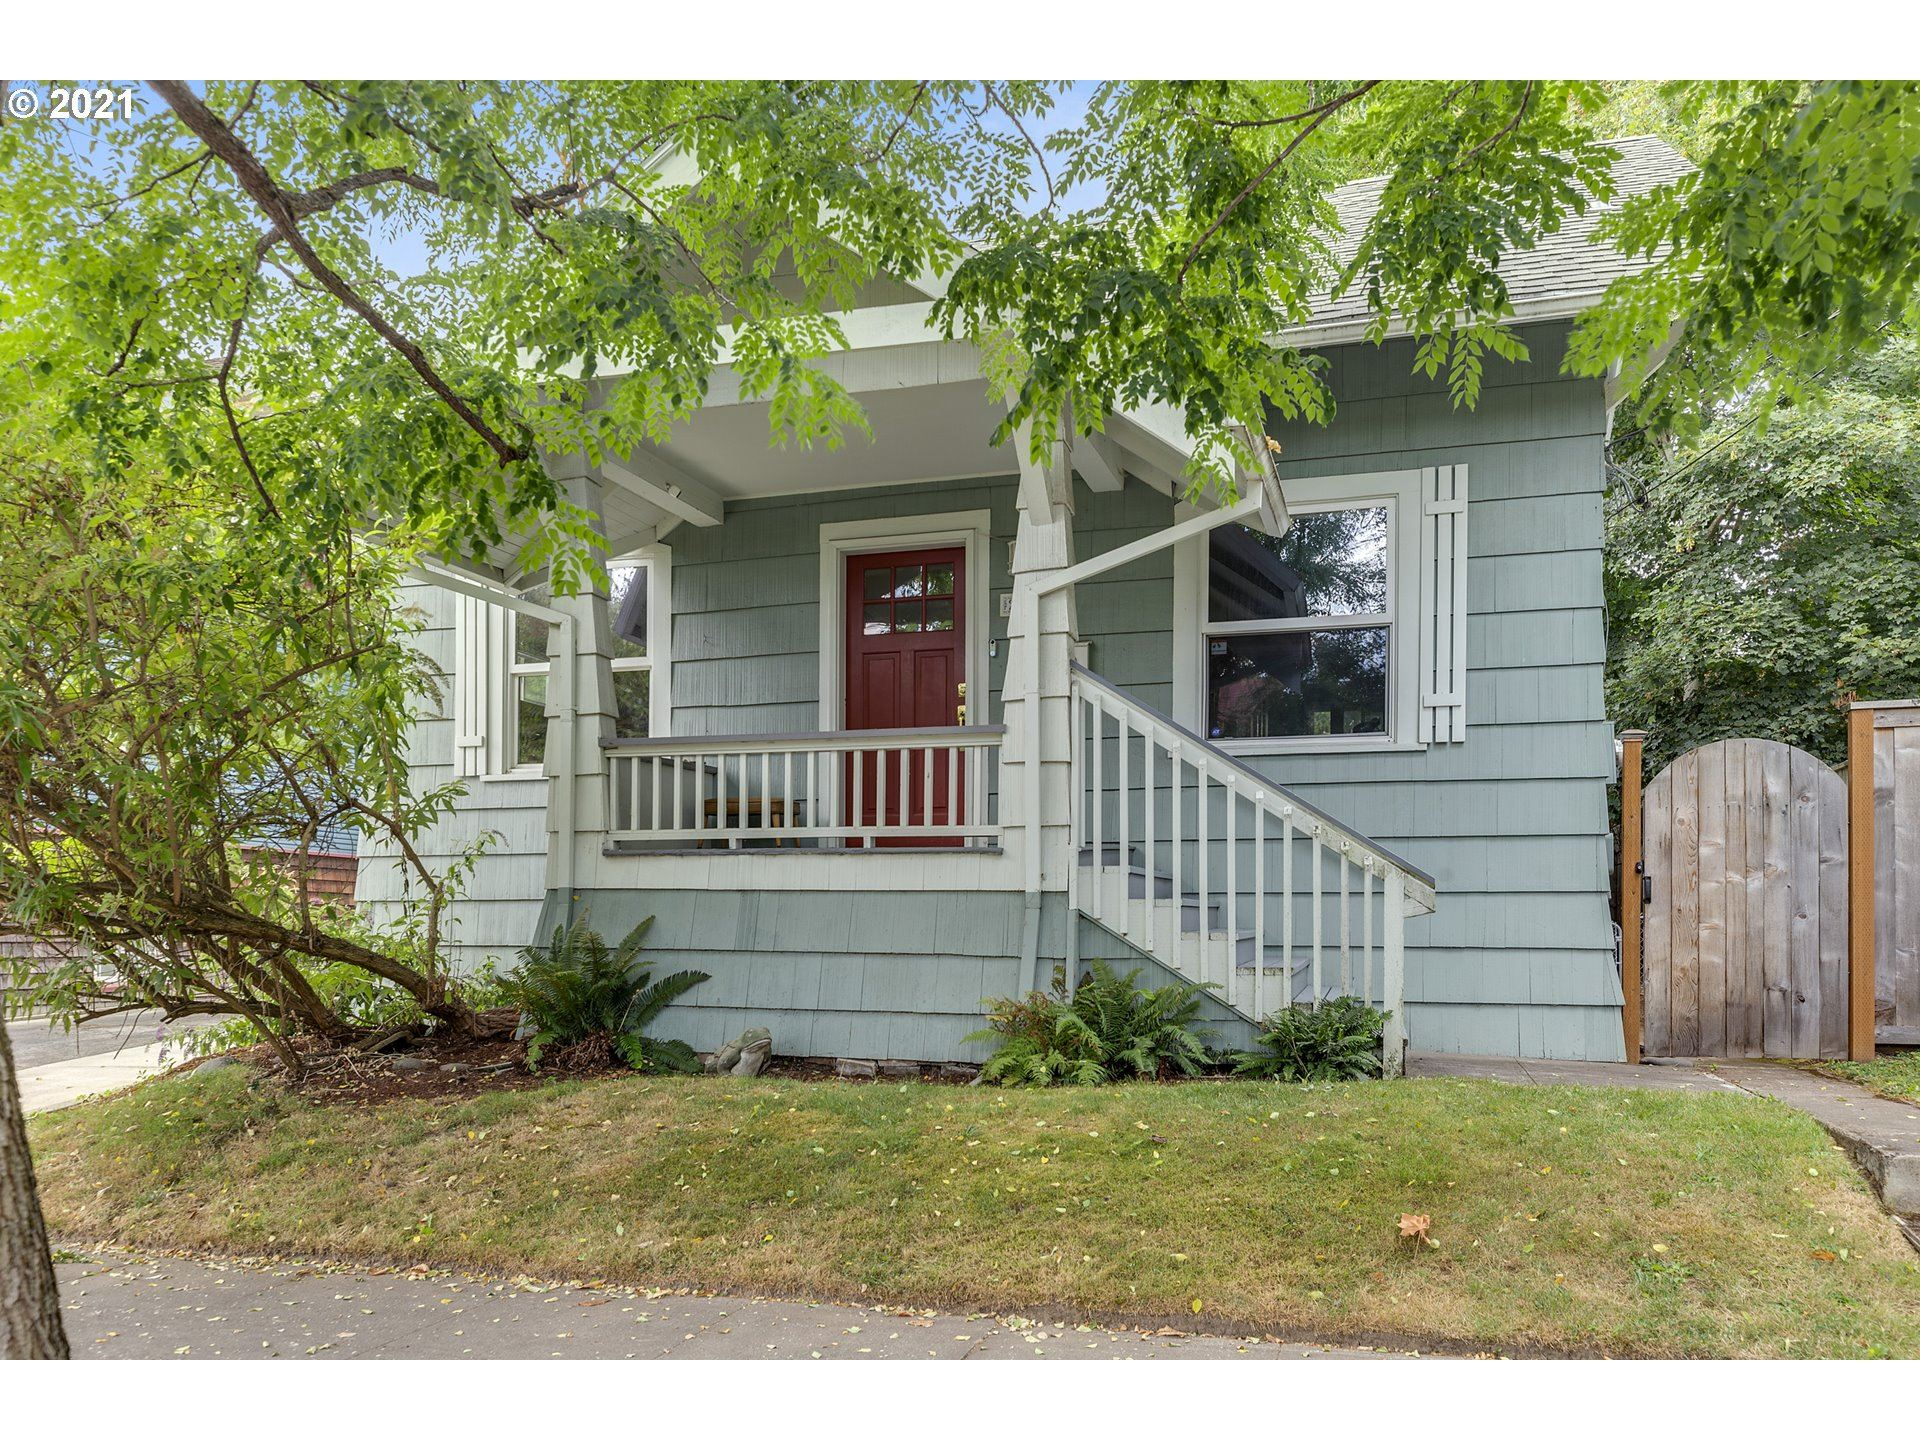 2031 SE 44TH AVE, Portland, OR 97215 - MLS#: 21650243